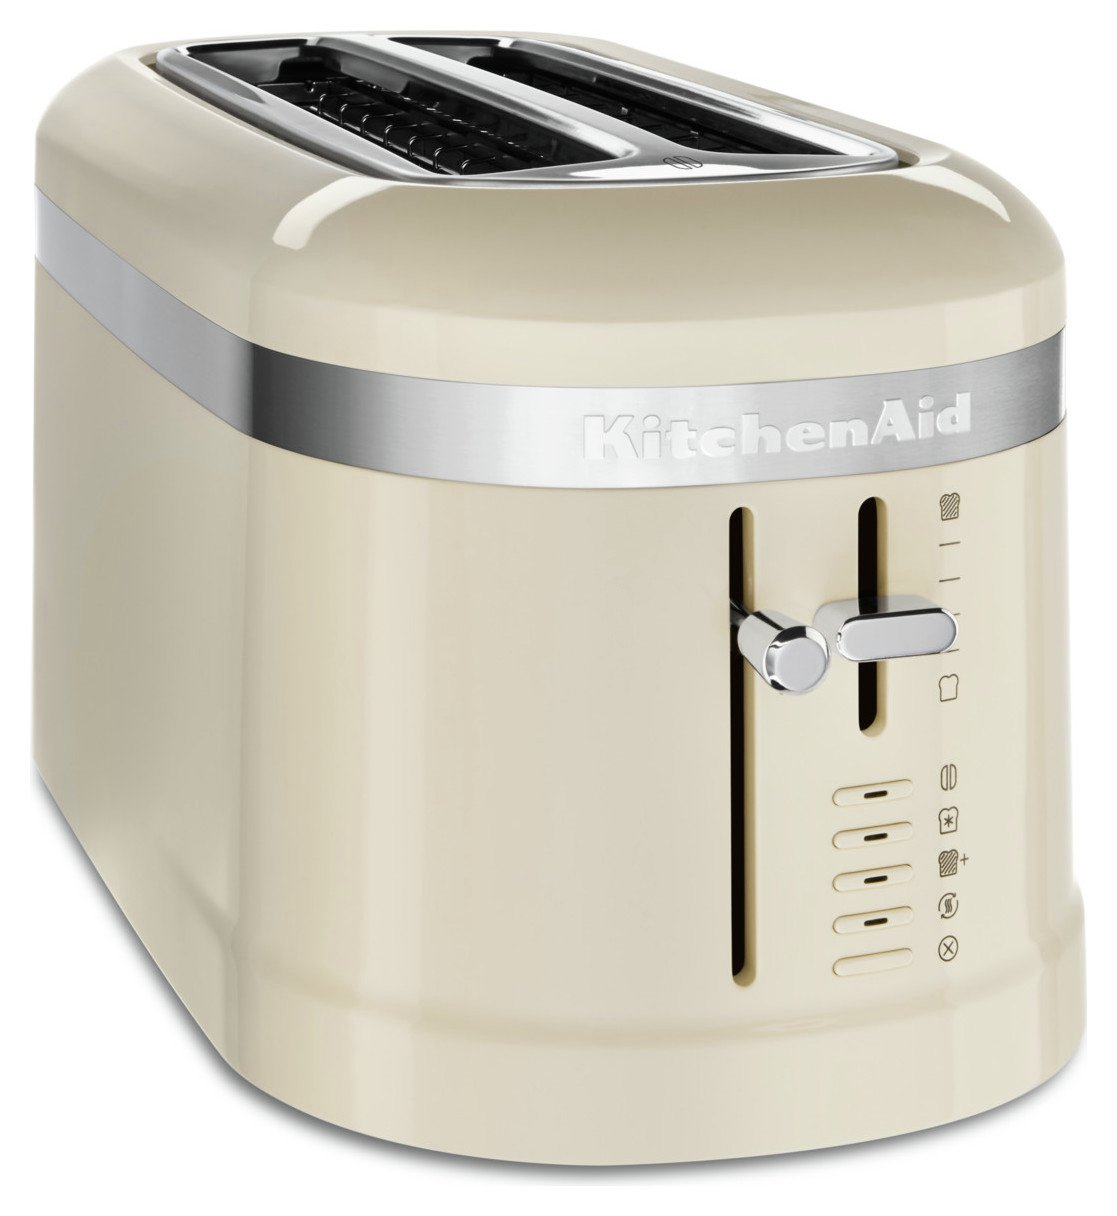 KitchenAid 5KMT5115BAC Design 4 Slice Toaster - Almond